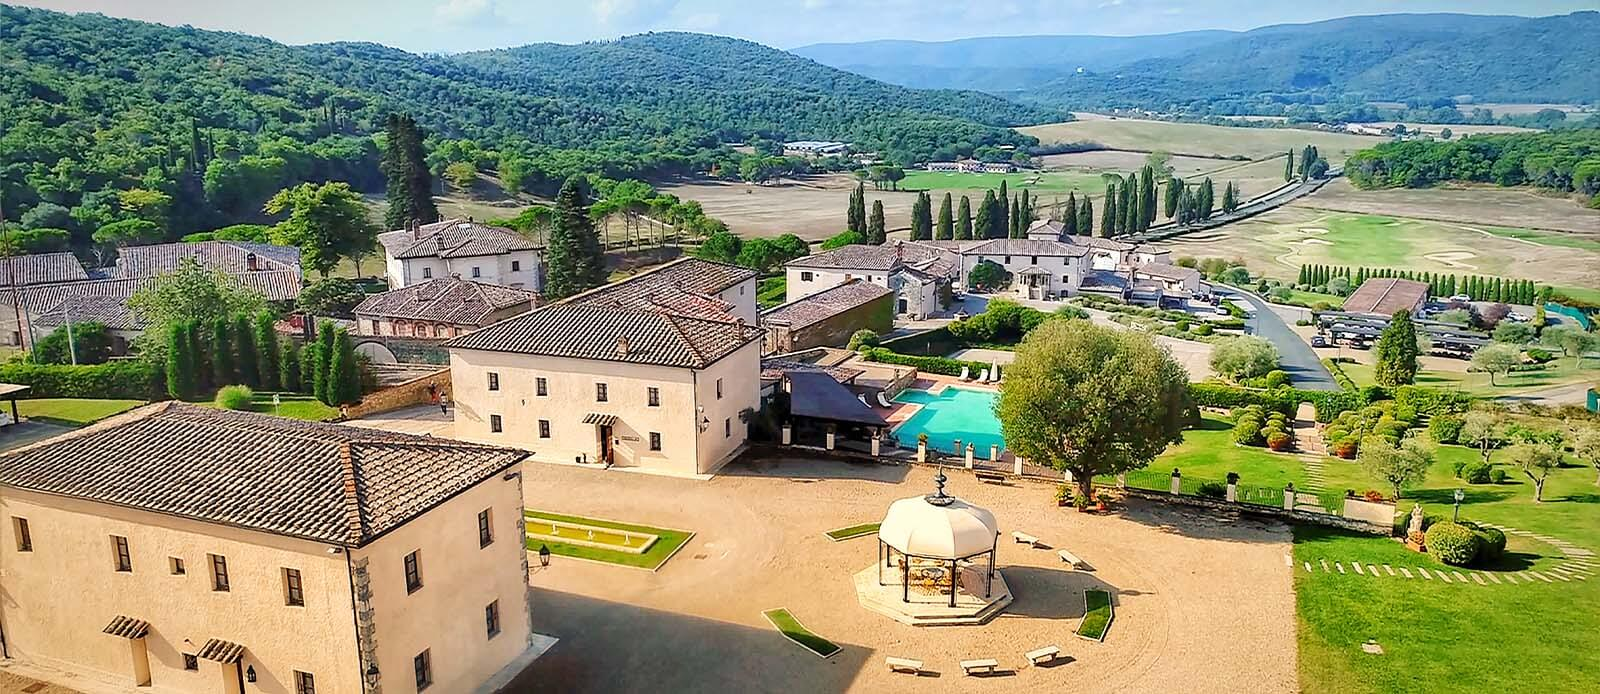 Daytime exterior at La Bagnaia Golf & Spa Resort Siena, Curio Collection by Hilton in Siena, Italy.